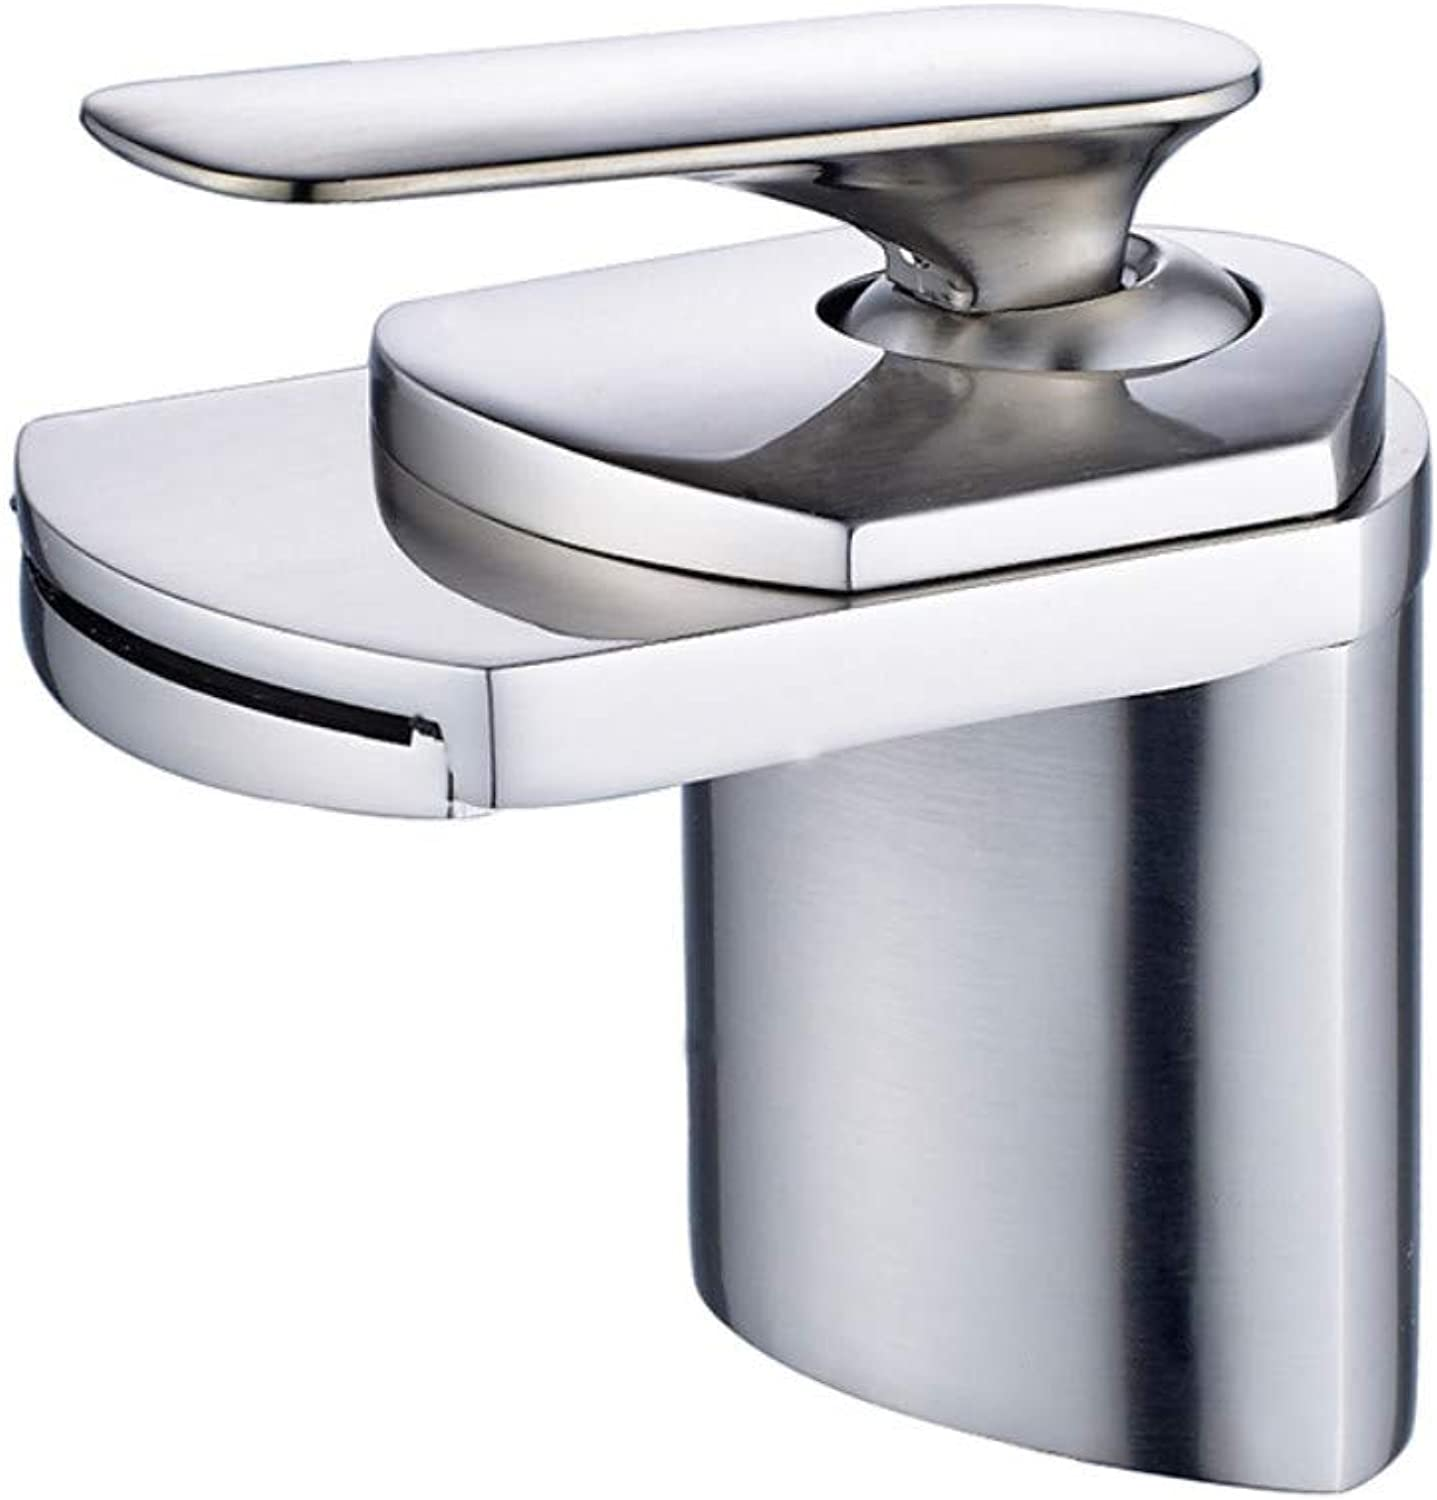 Kitchen Sink Taps Bathroom Sink Taps Waterfall Mountain Basin Mixer Faucet Brush Nickel Wide Trough Boat Sink Faucet